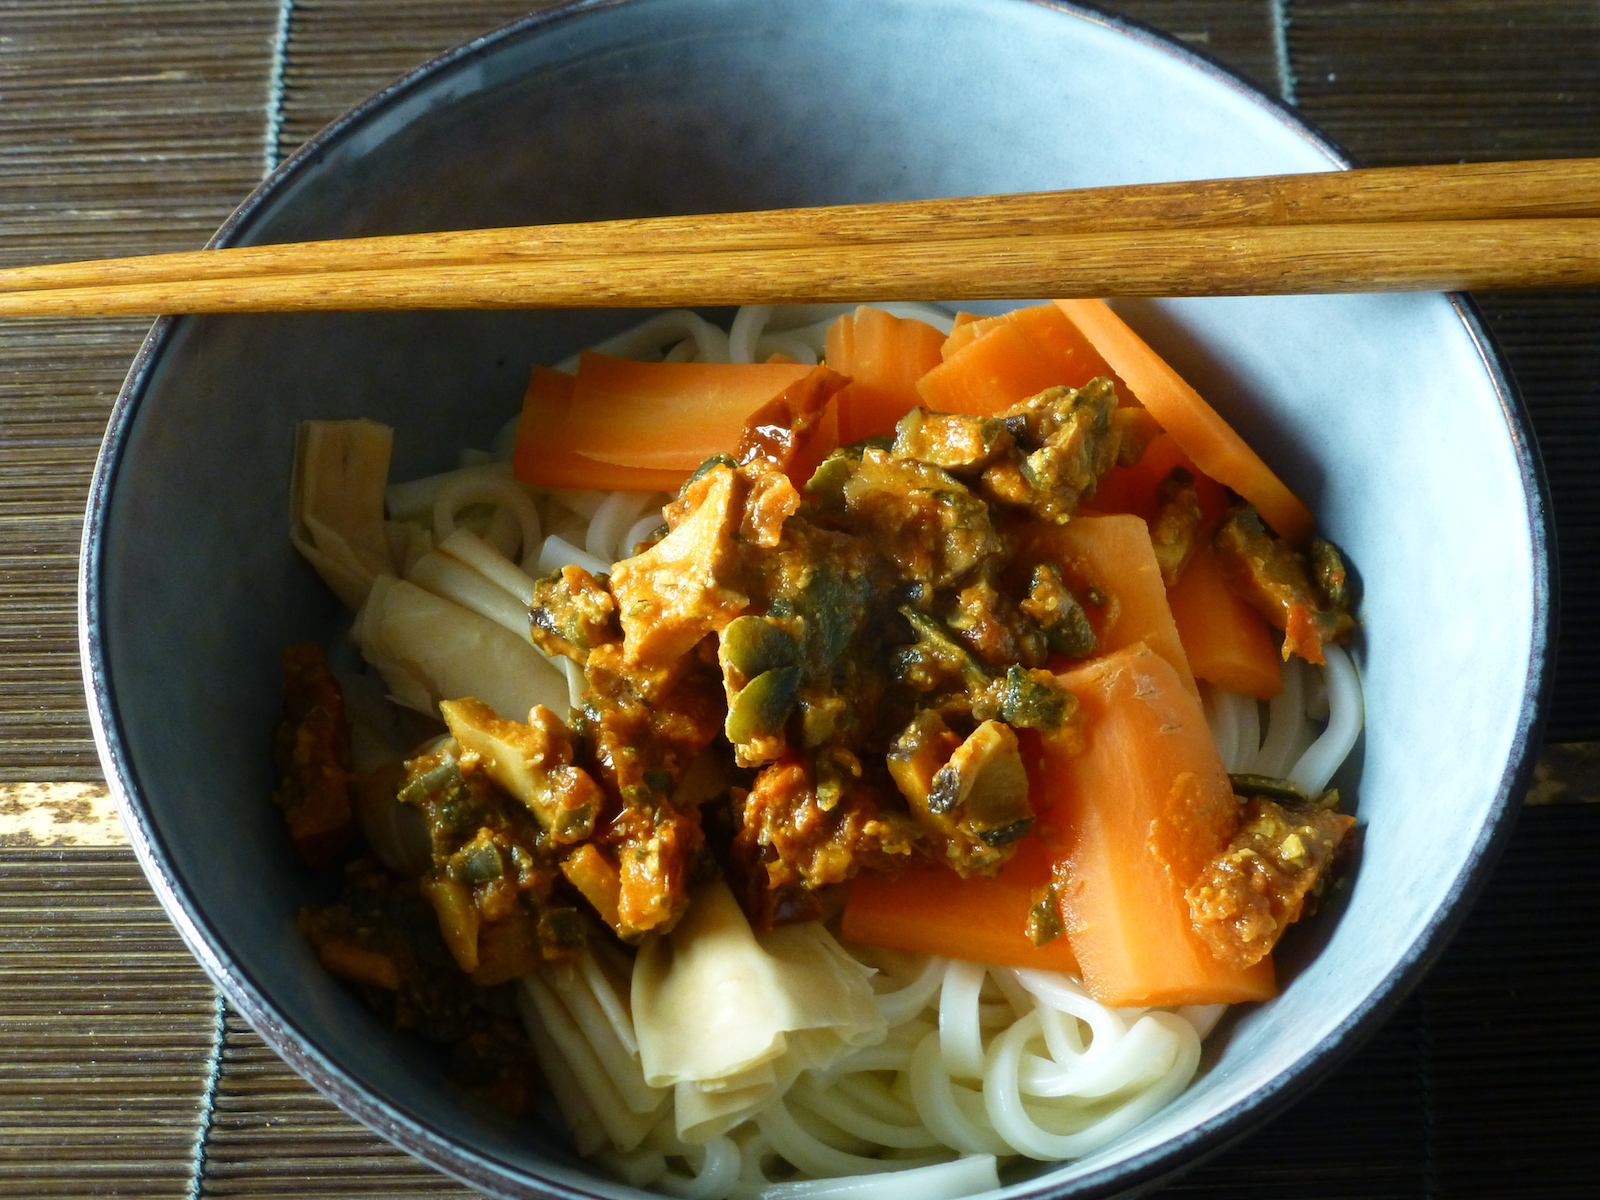 Udon with carrots and tofu skin knots in a mildly spicy sauce